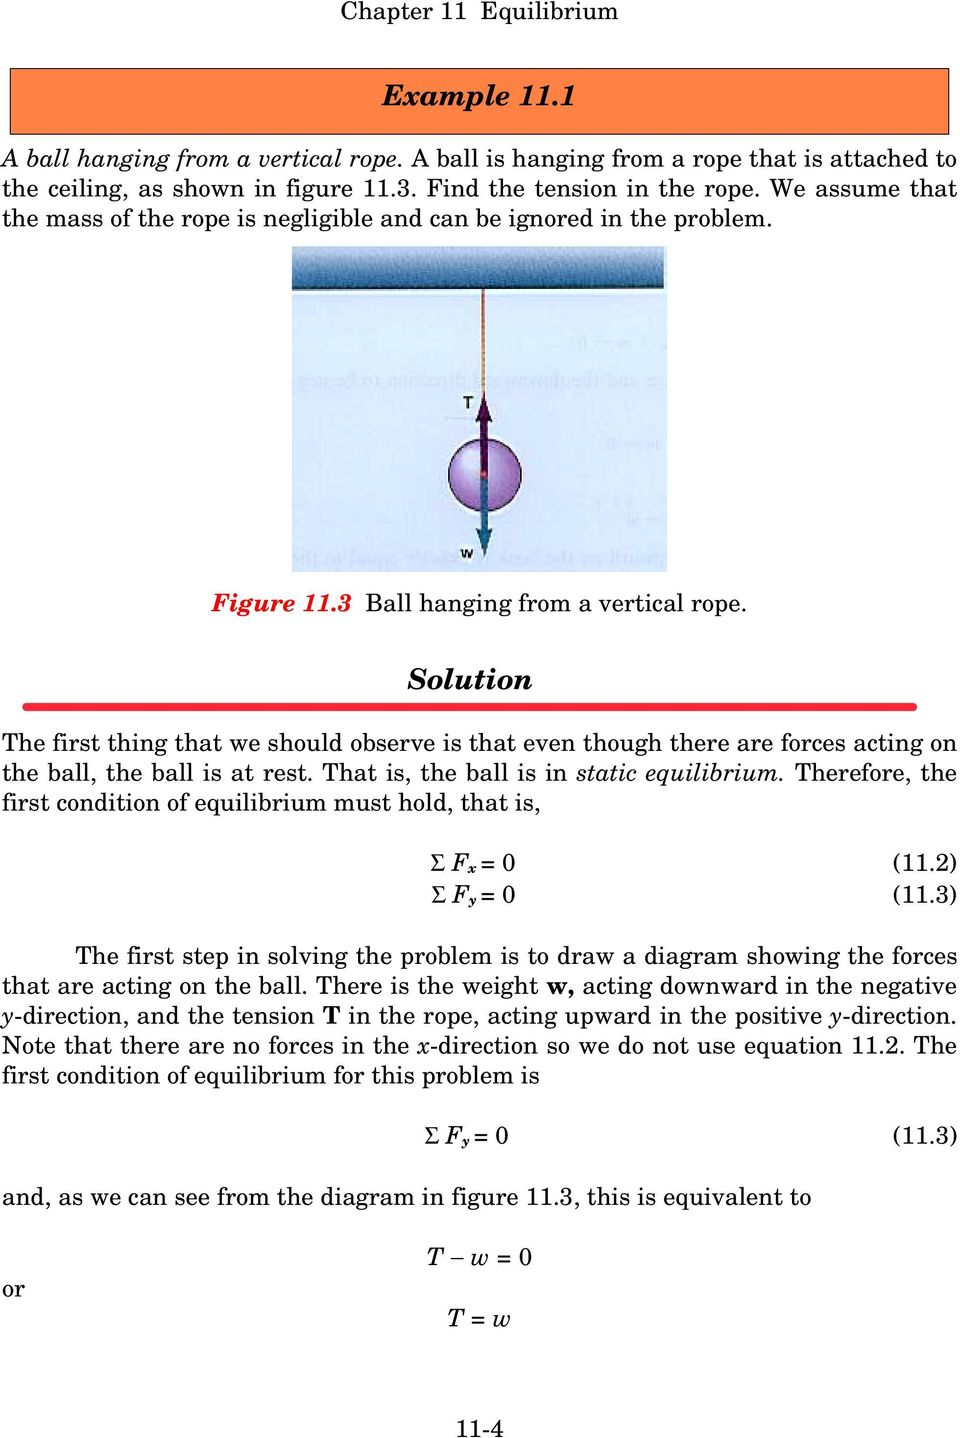 Solution The first thing that we should observe is that even though there are forces acting on the ball, the ball is at rest. That is, the ball is in static equilibrium.